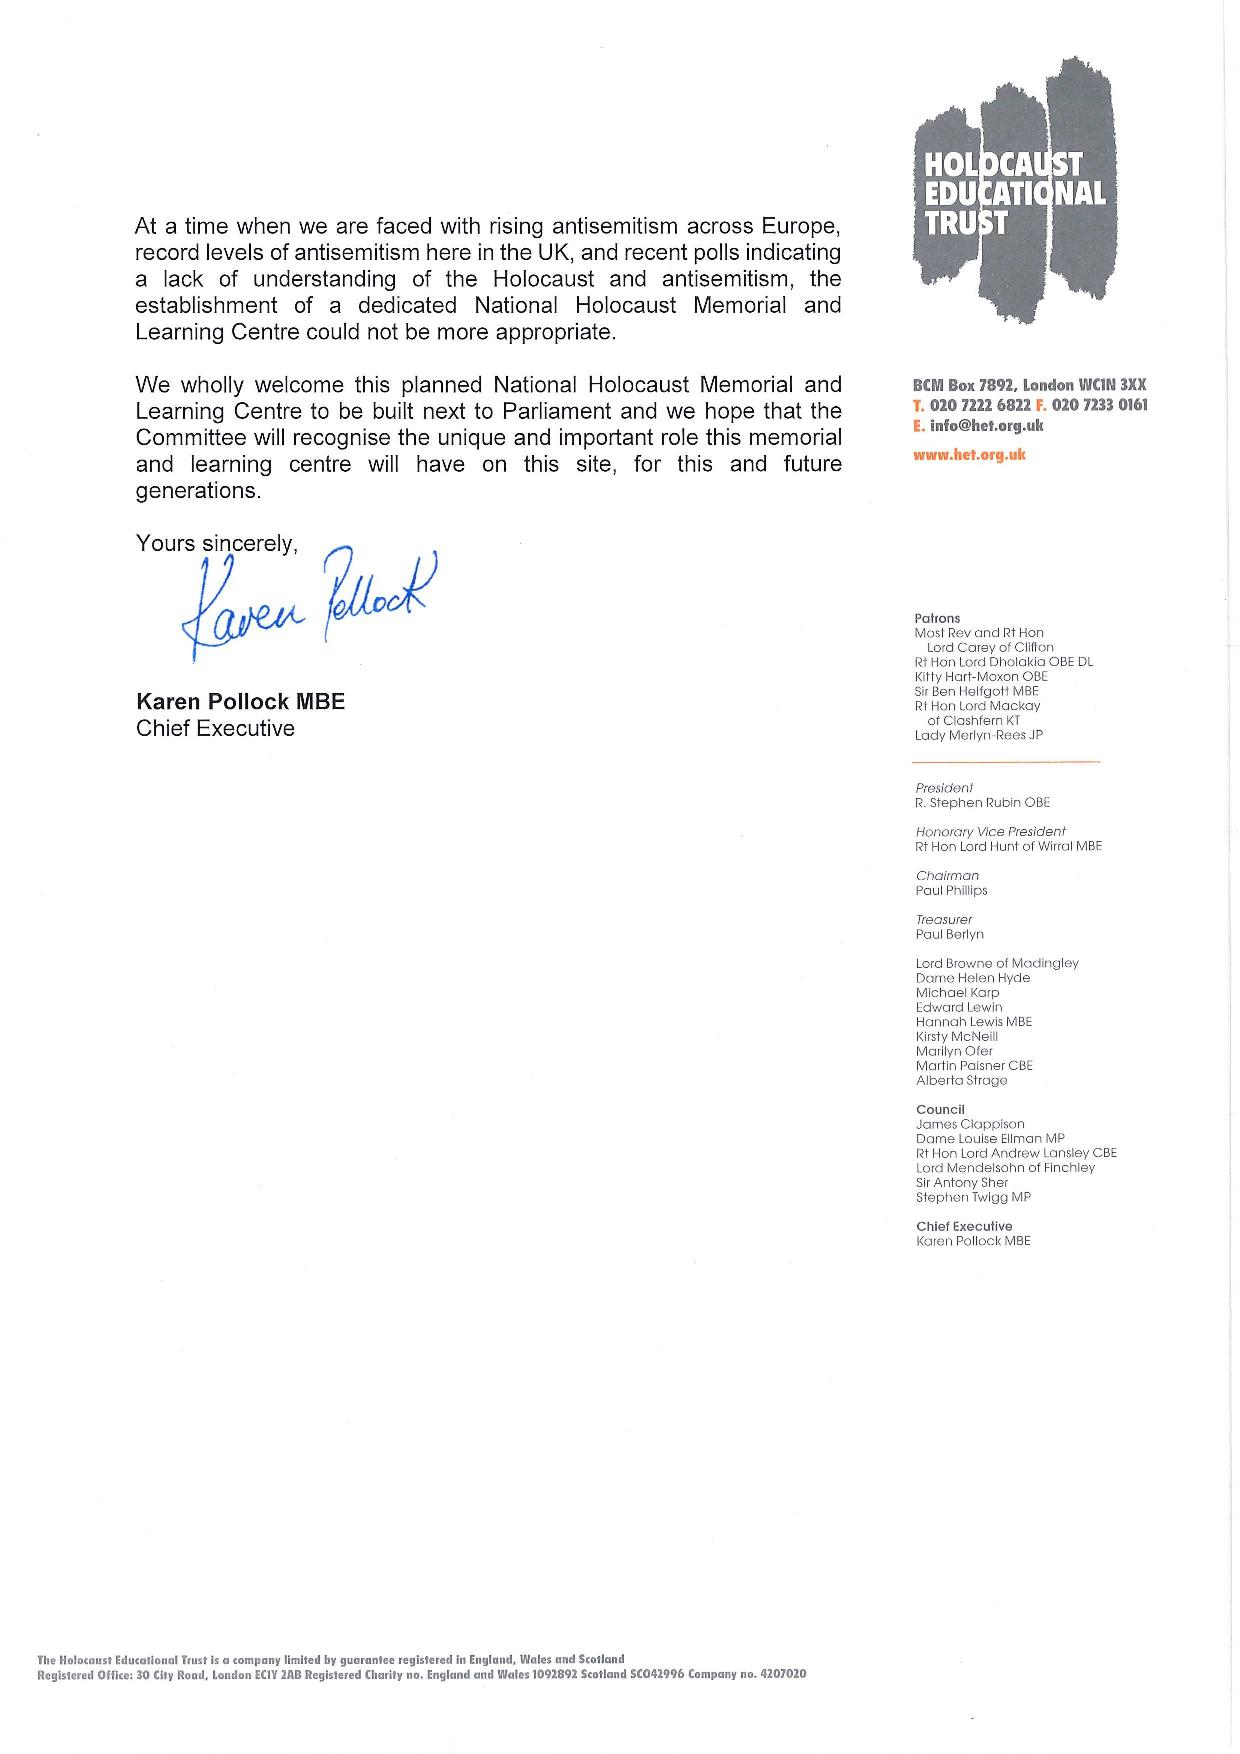 Westminster Council HET Letter of Support Page 2